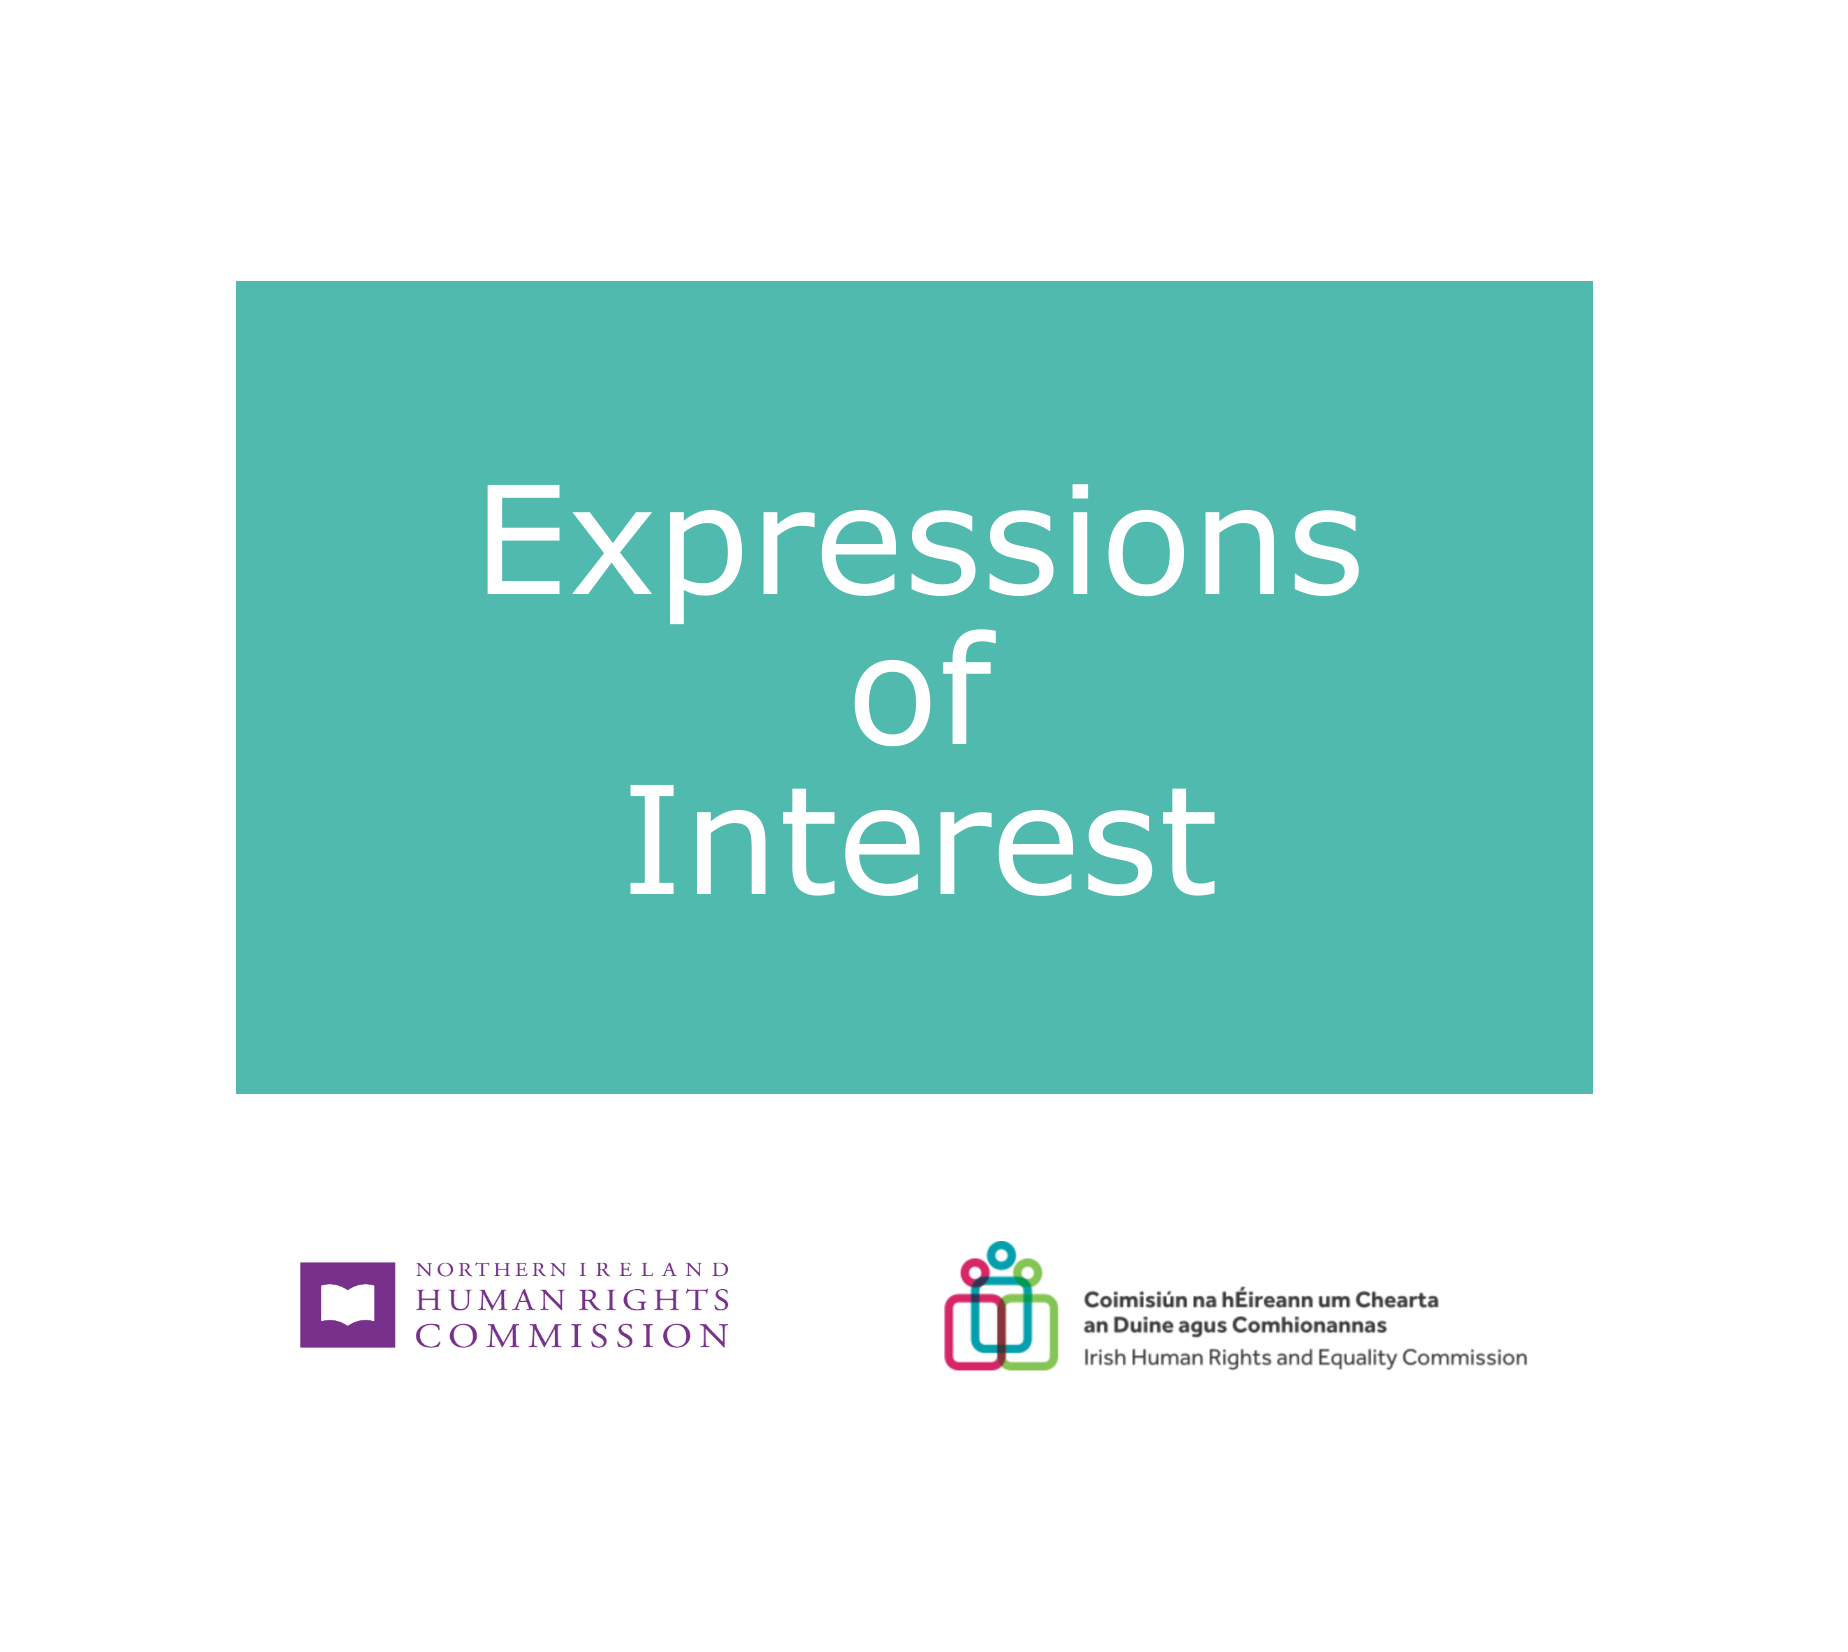 Joint Committee calls for expressions of interest into EU citizenship research